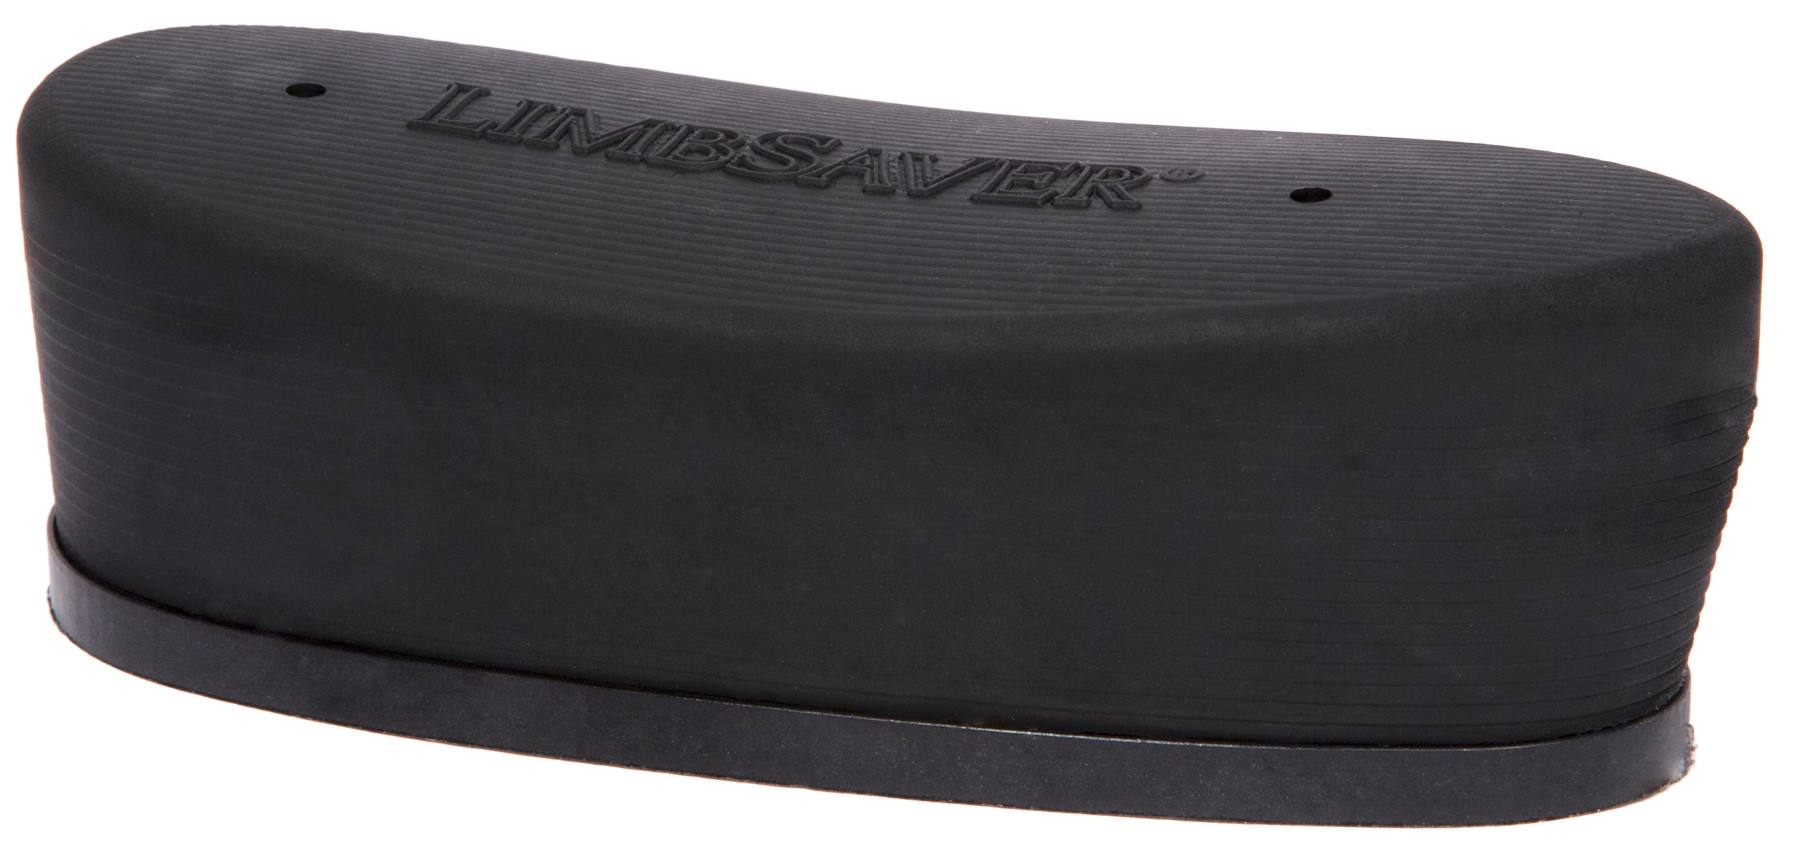 Limbsaver 10538 Grind-To-Fit Buttpad Medium Smooth Rubber